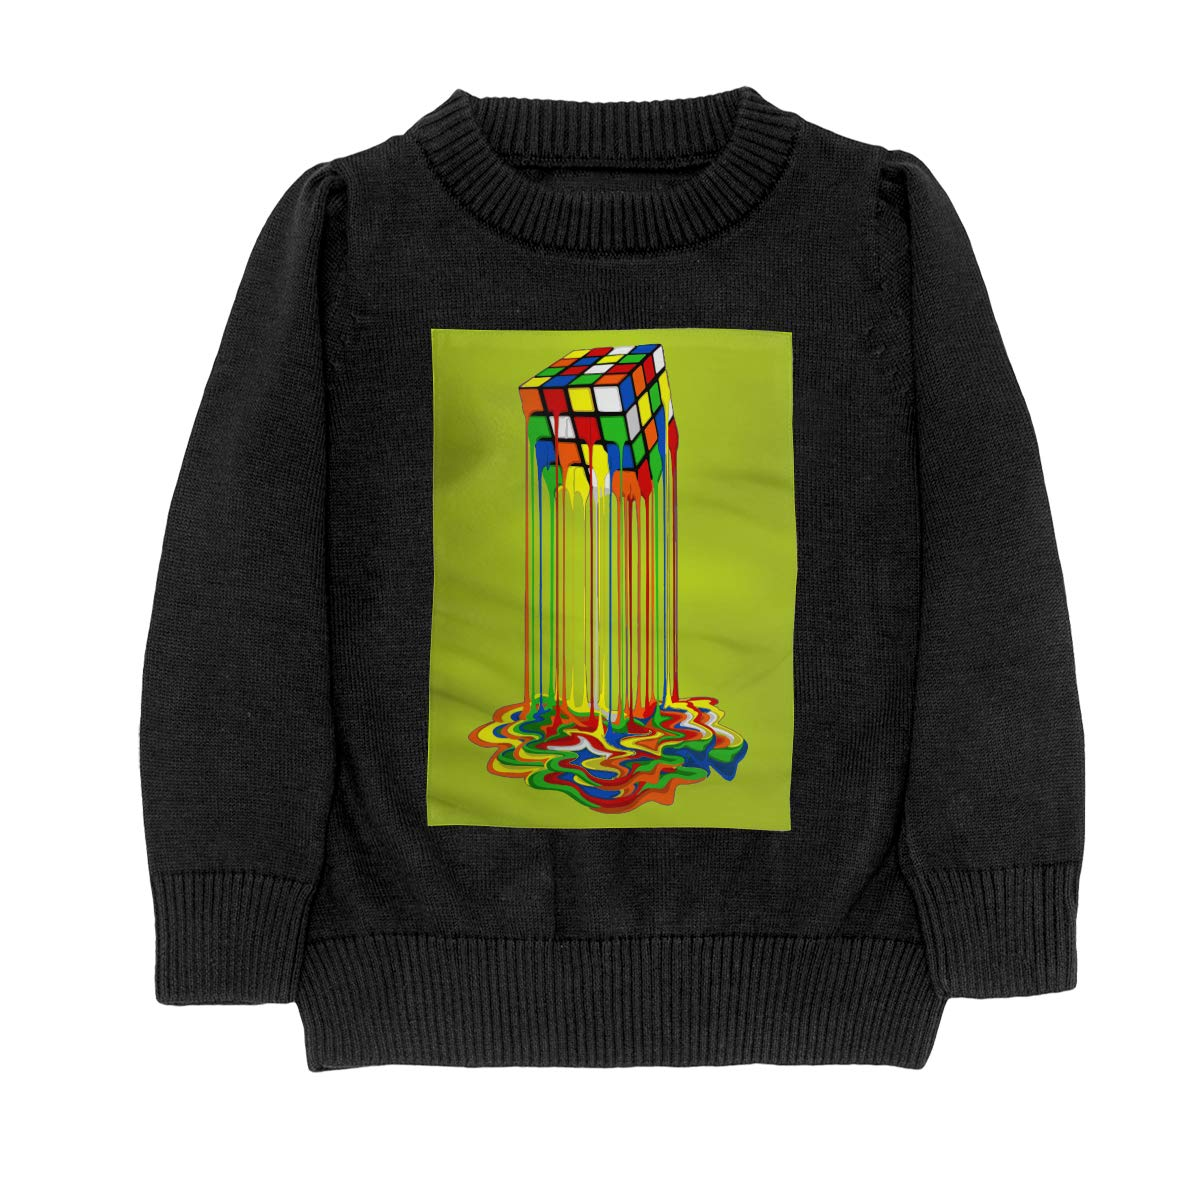 Rainbow Abstraction Melted Rubix Cube Casual Adolescent Boys /& Girls Unisex Sweater Keep Warm